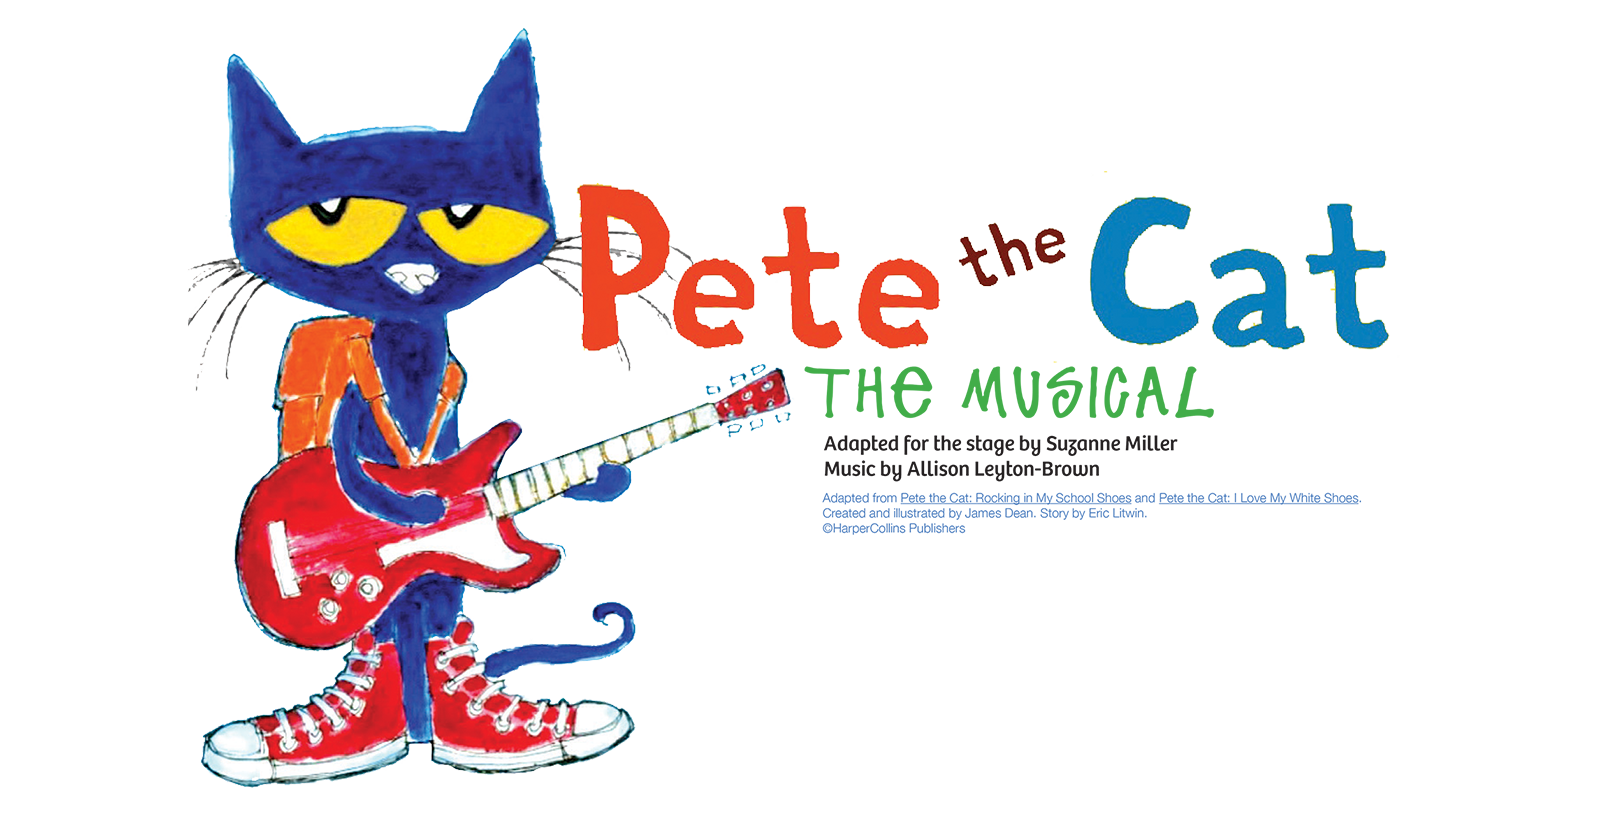 Musical clipart music history. Pete the cat rose